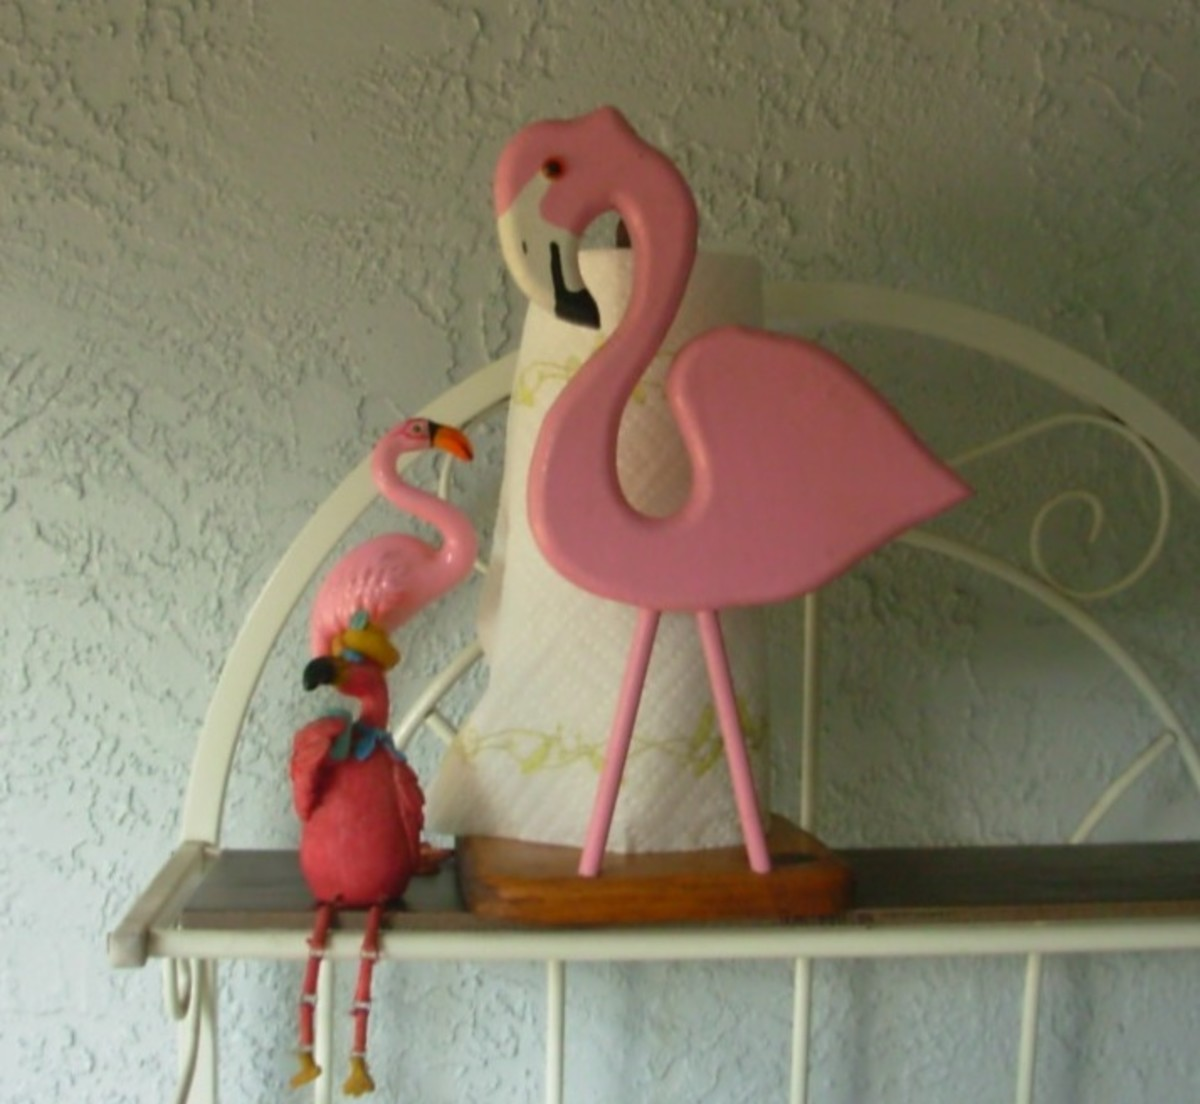 A flamingo paper towel older keeps company with a few flamingo figures.